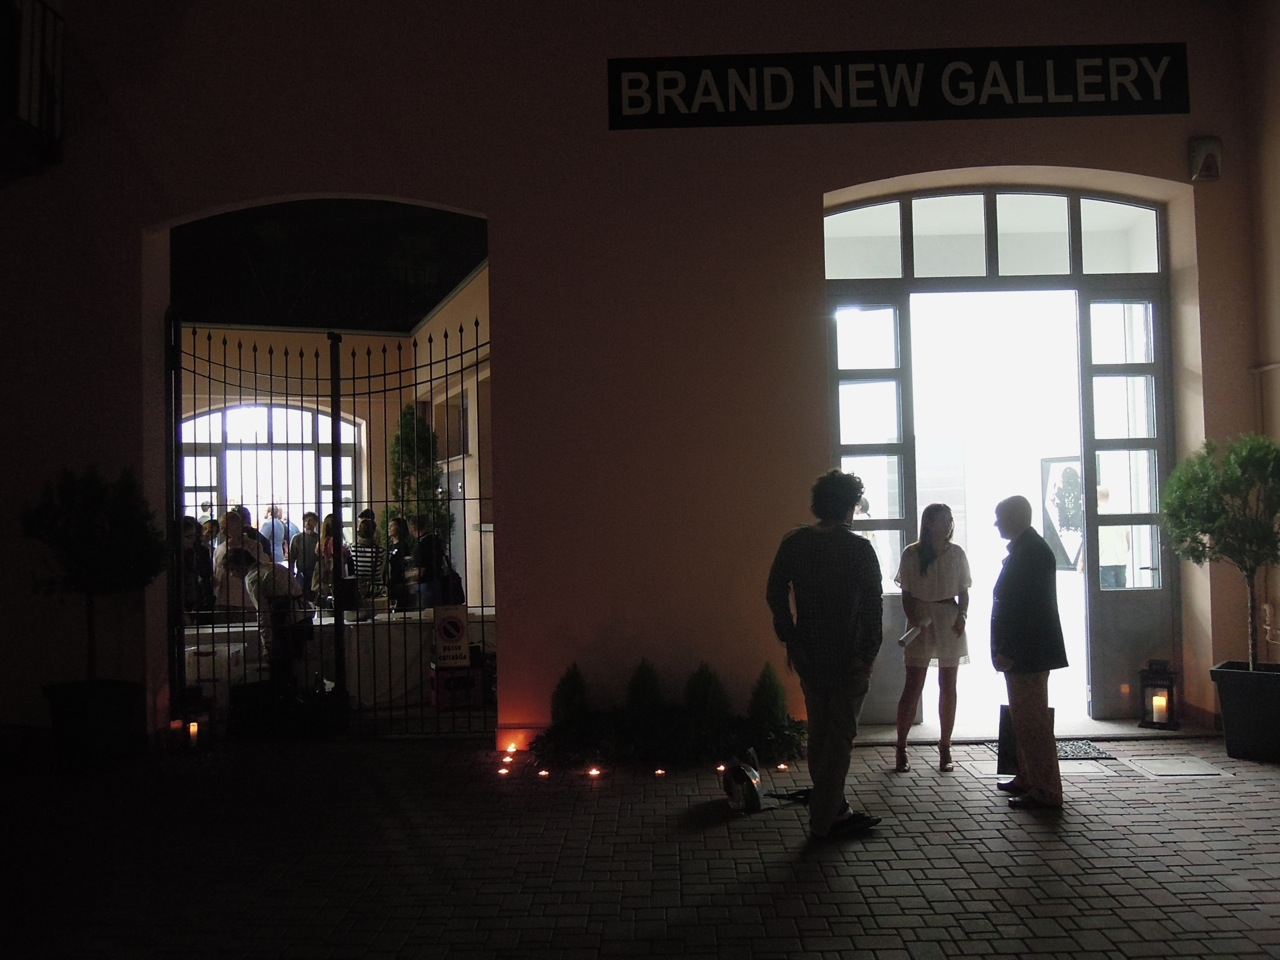 Brand New Gallery, Milano 2011